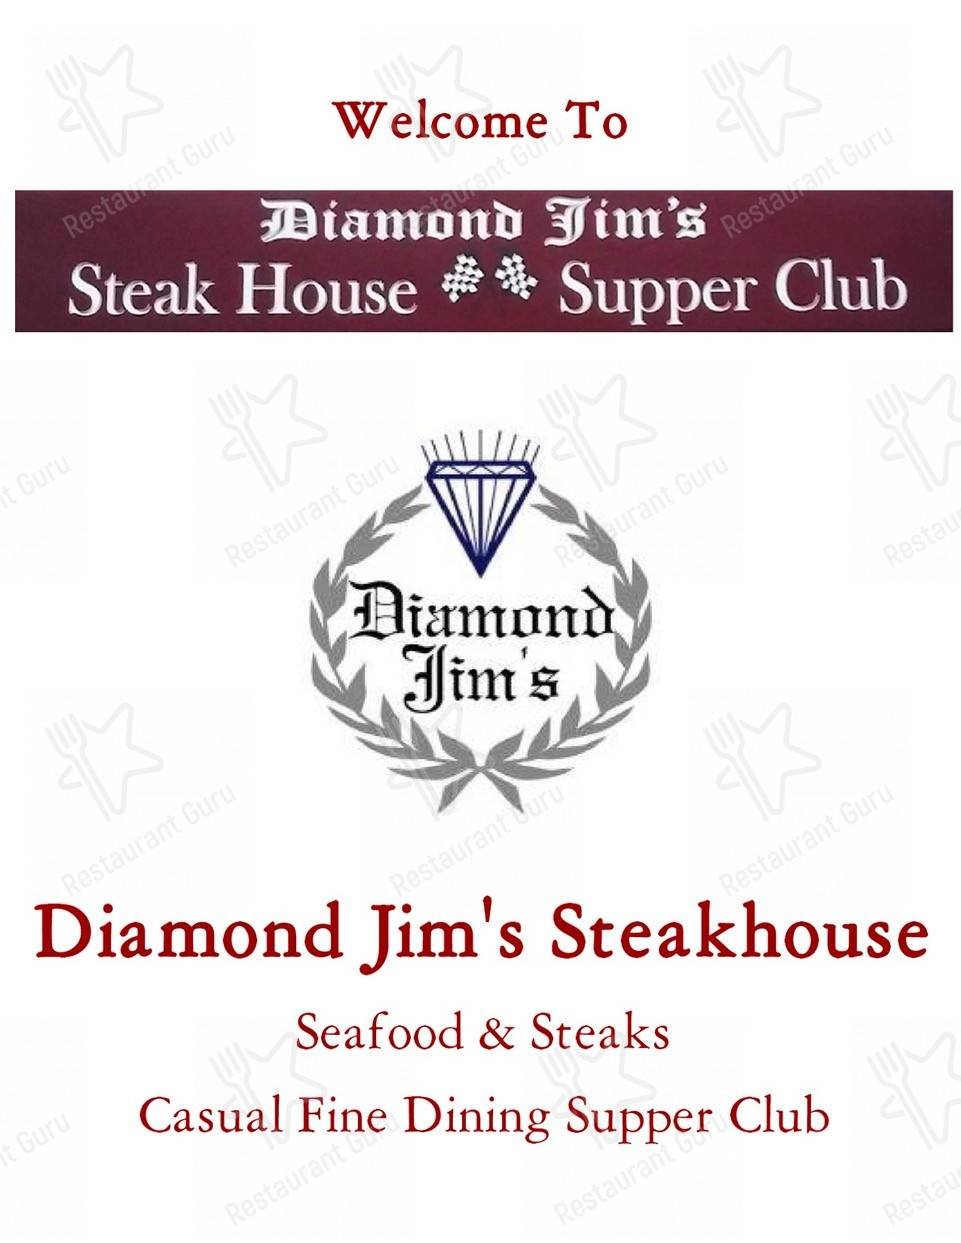 Check out the menu for Diamond Jim's Steakhouse